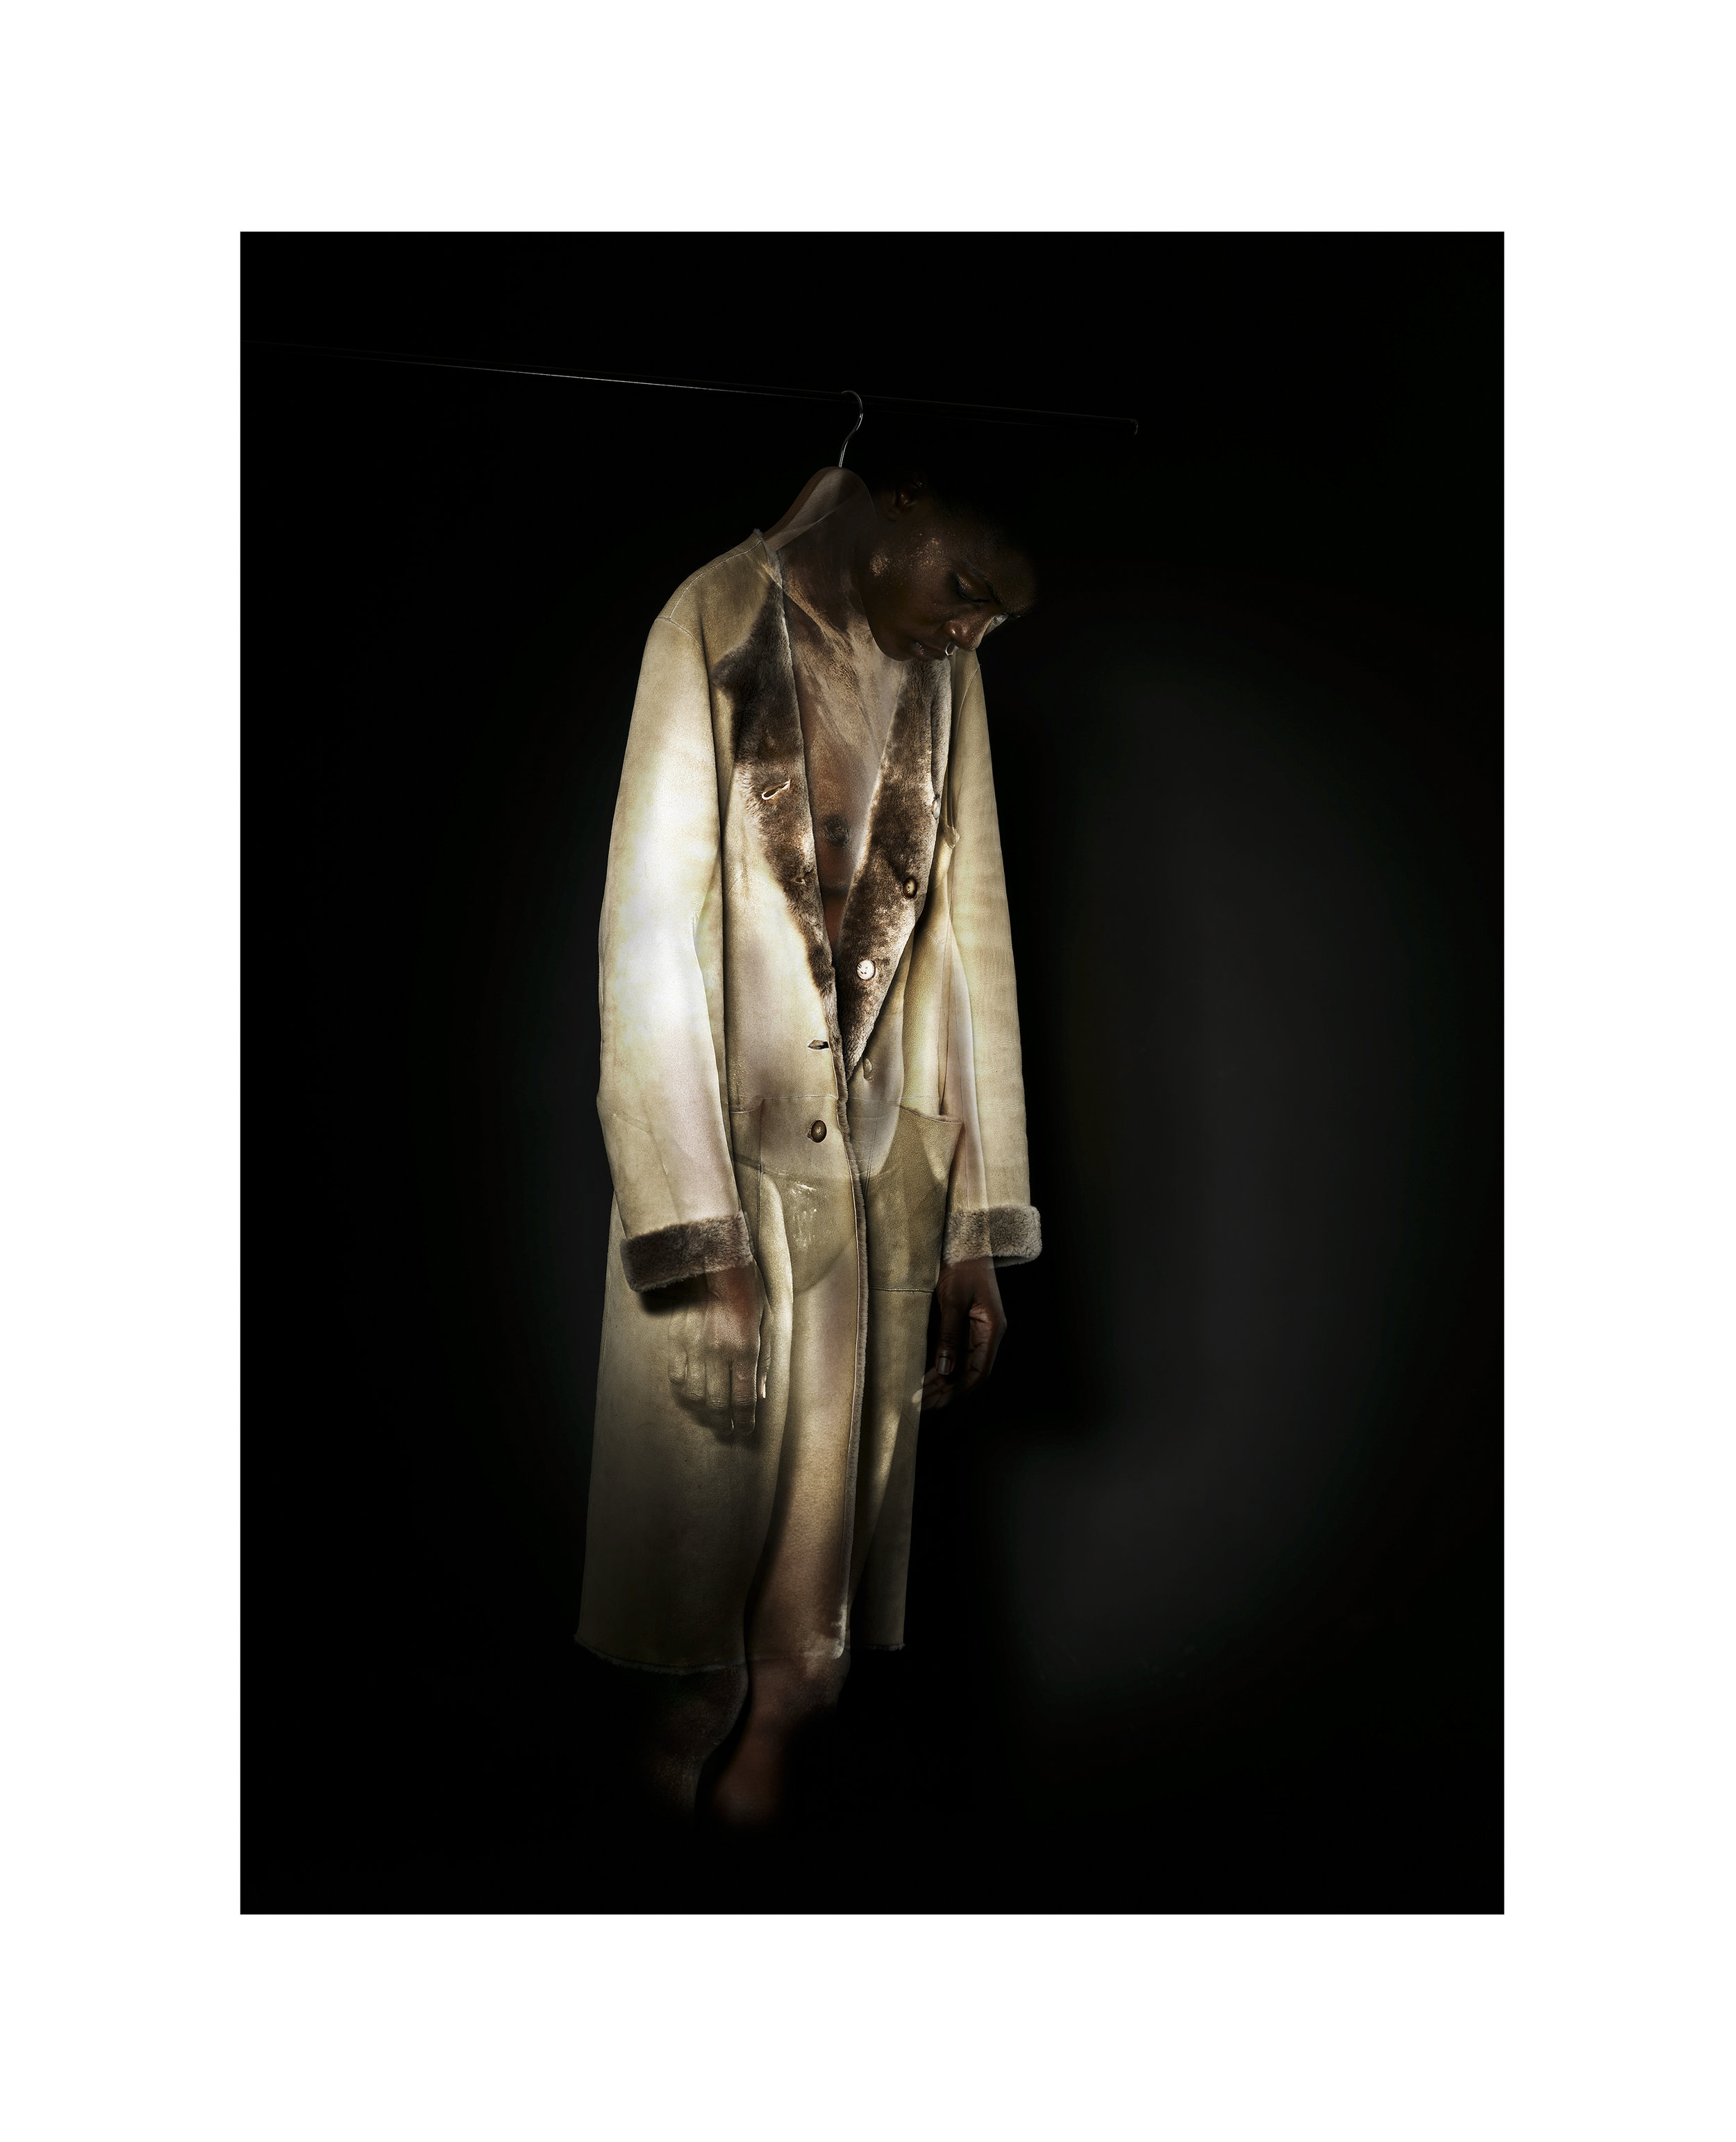 ' Clothes Horse '    Malcolm Dare   Archival Print on Hahnemuhle Photo Rag  R 25 000.00 excl. vat